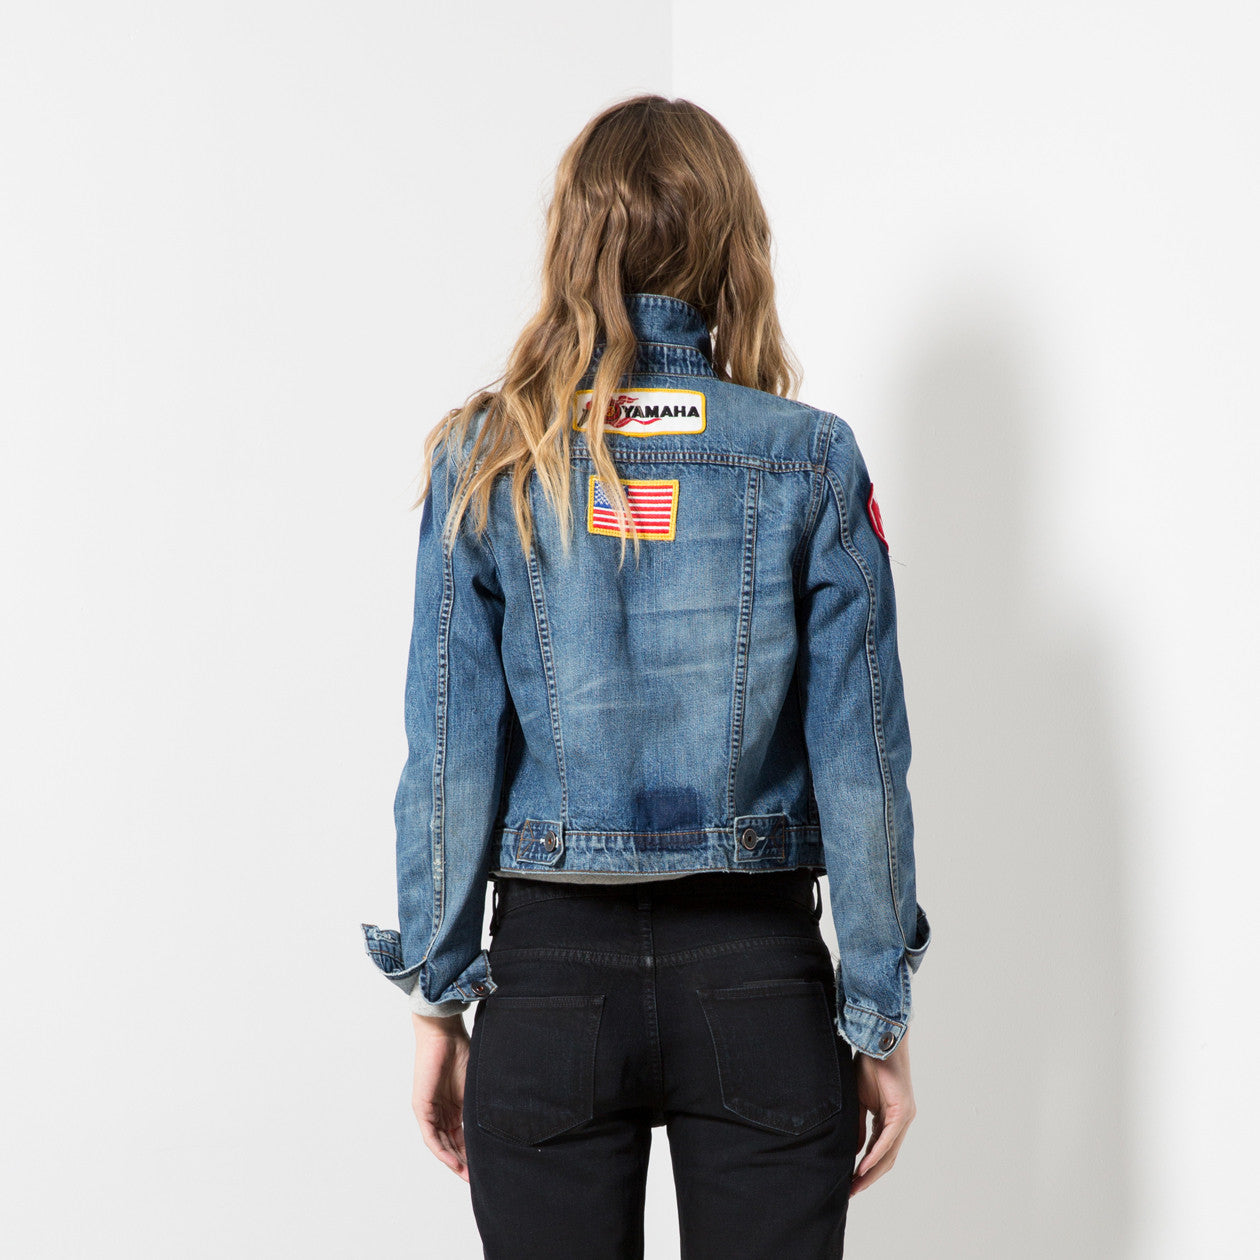 CLASSIC JACKET in PATCHED | MADE TO ORDER